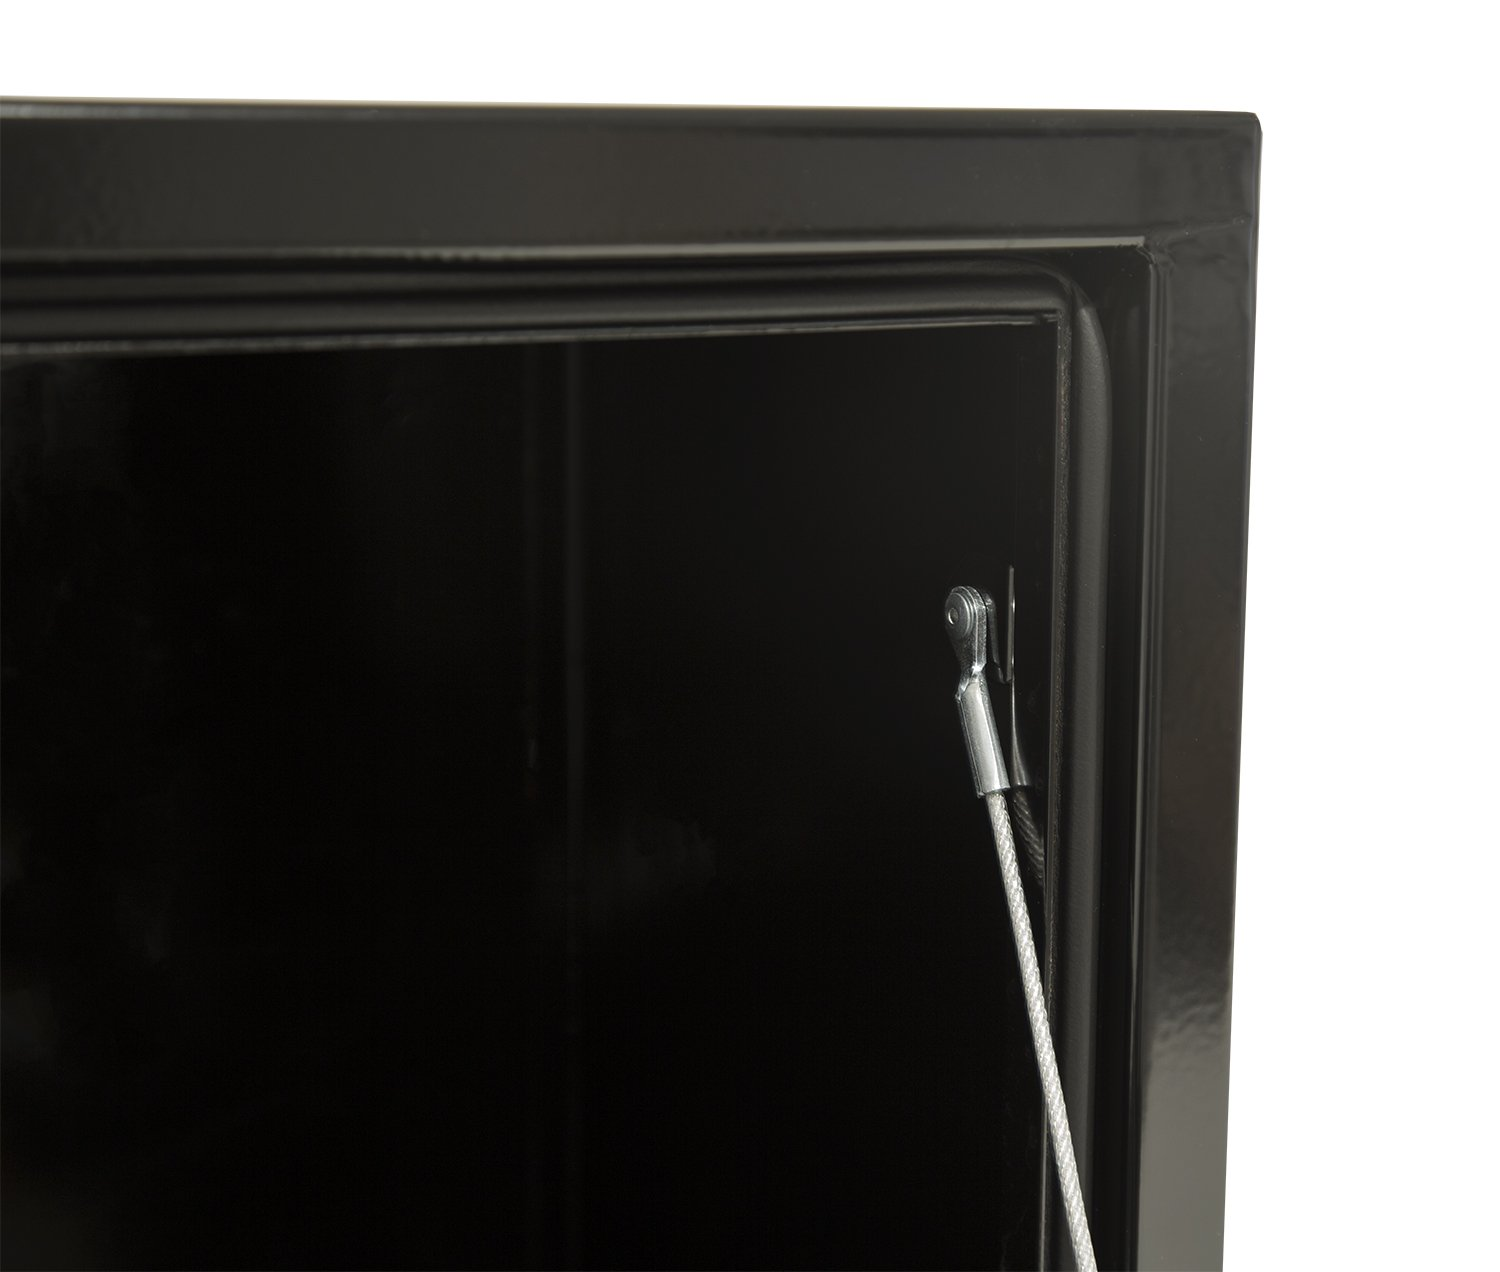 Buyers Products Black Steel Underbody Truck Box w/ T-Handle Latch (24x24x30 Inch) by Buyers Products (Image #3)